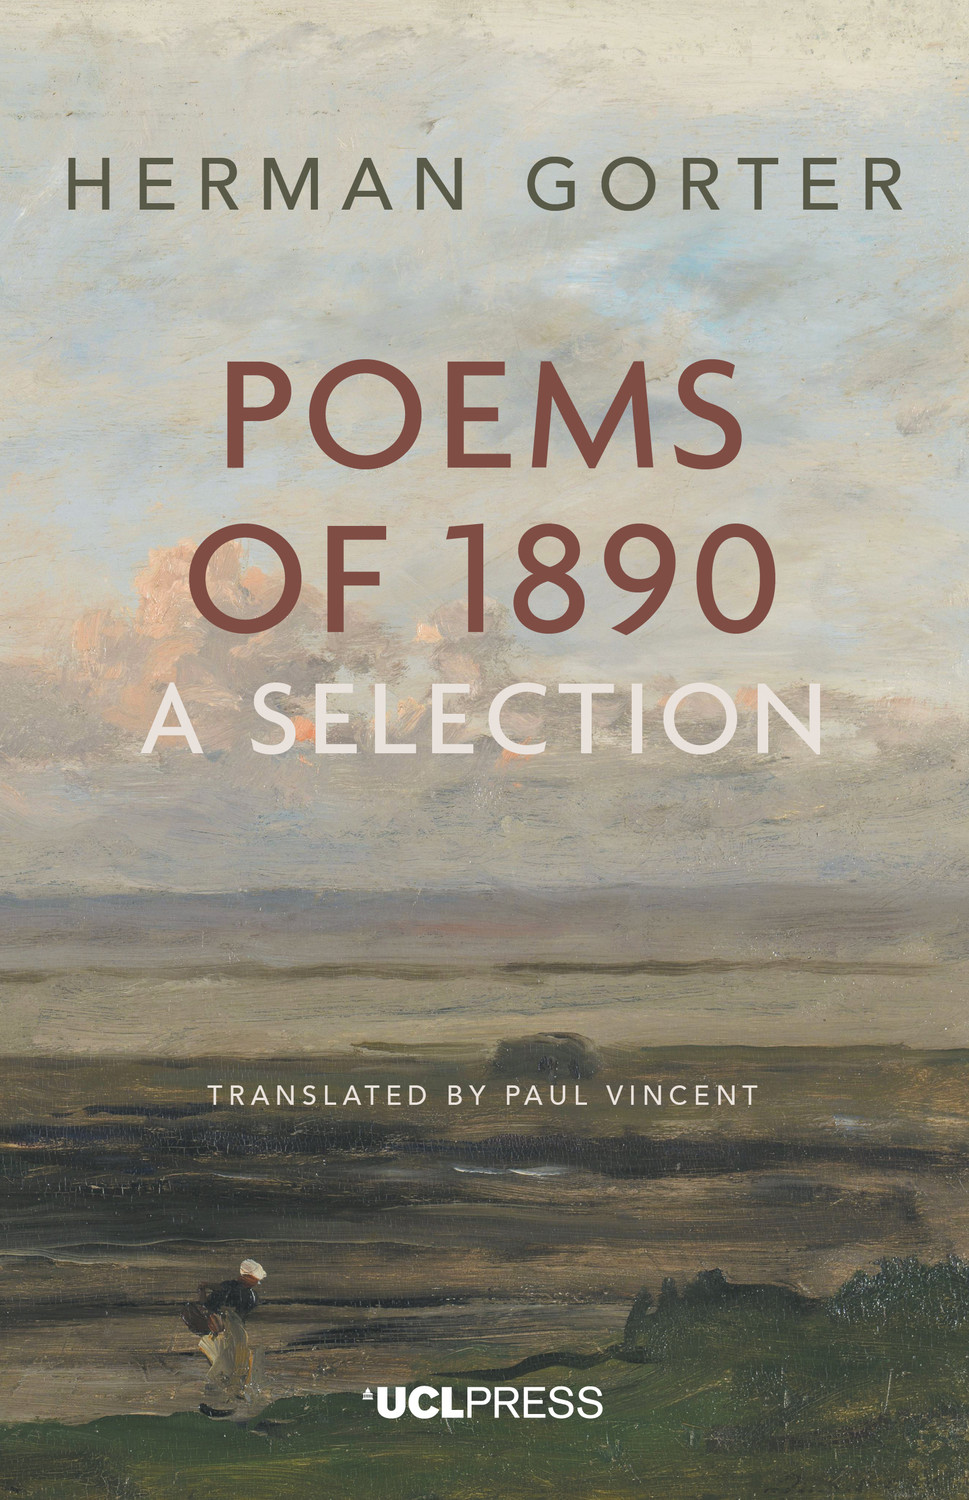 Herman Gorter: Poems of 1890